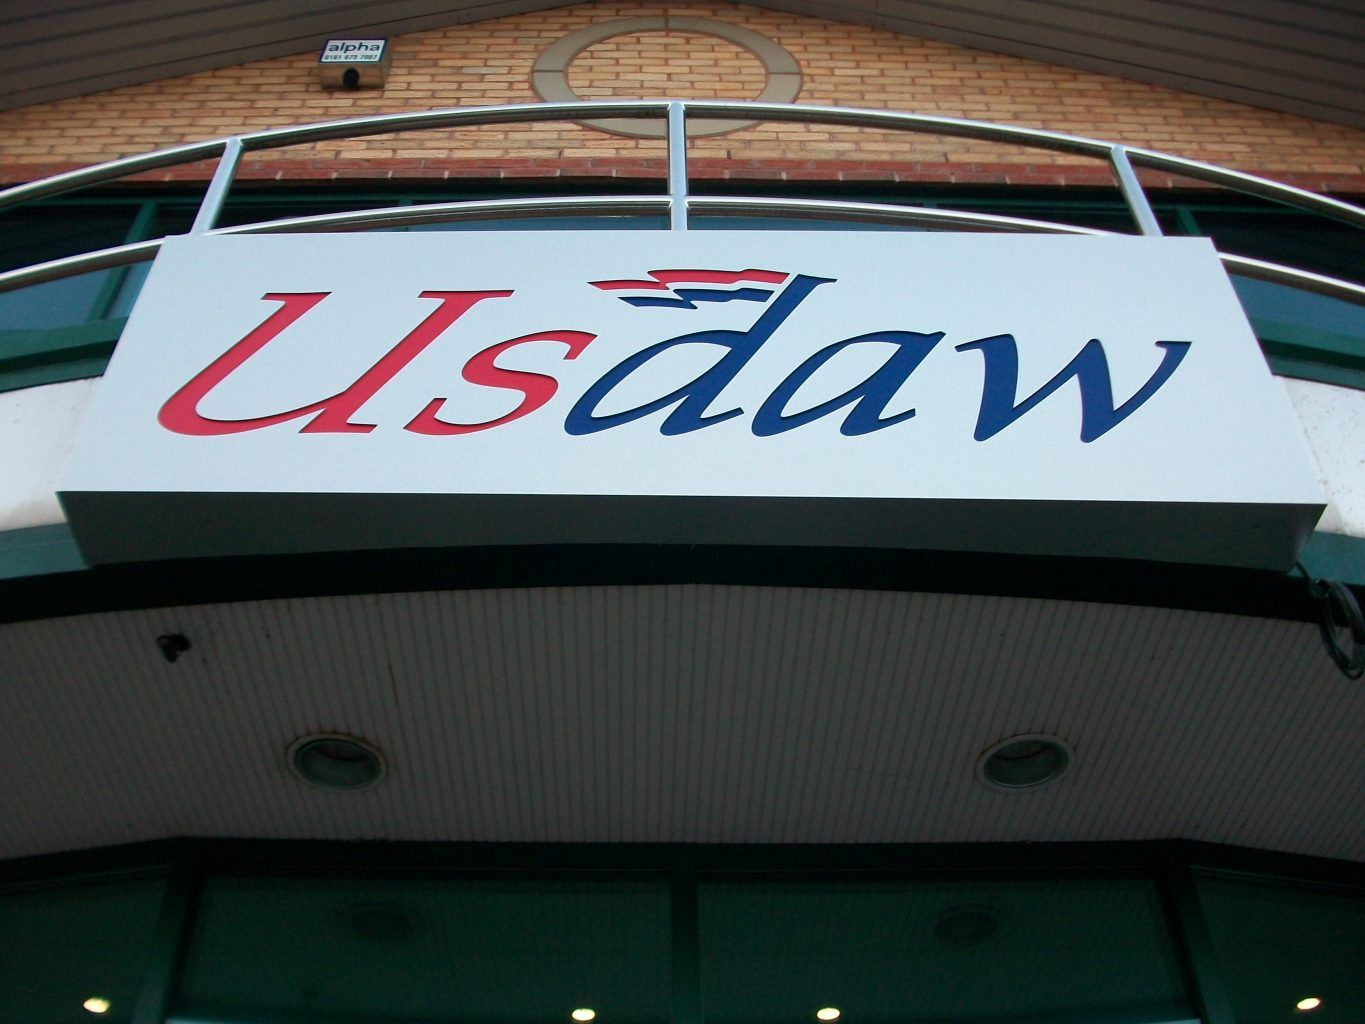 Usdaw Fret cut brushed composite tray sign